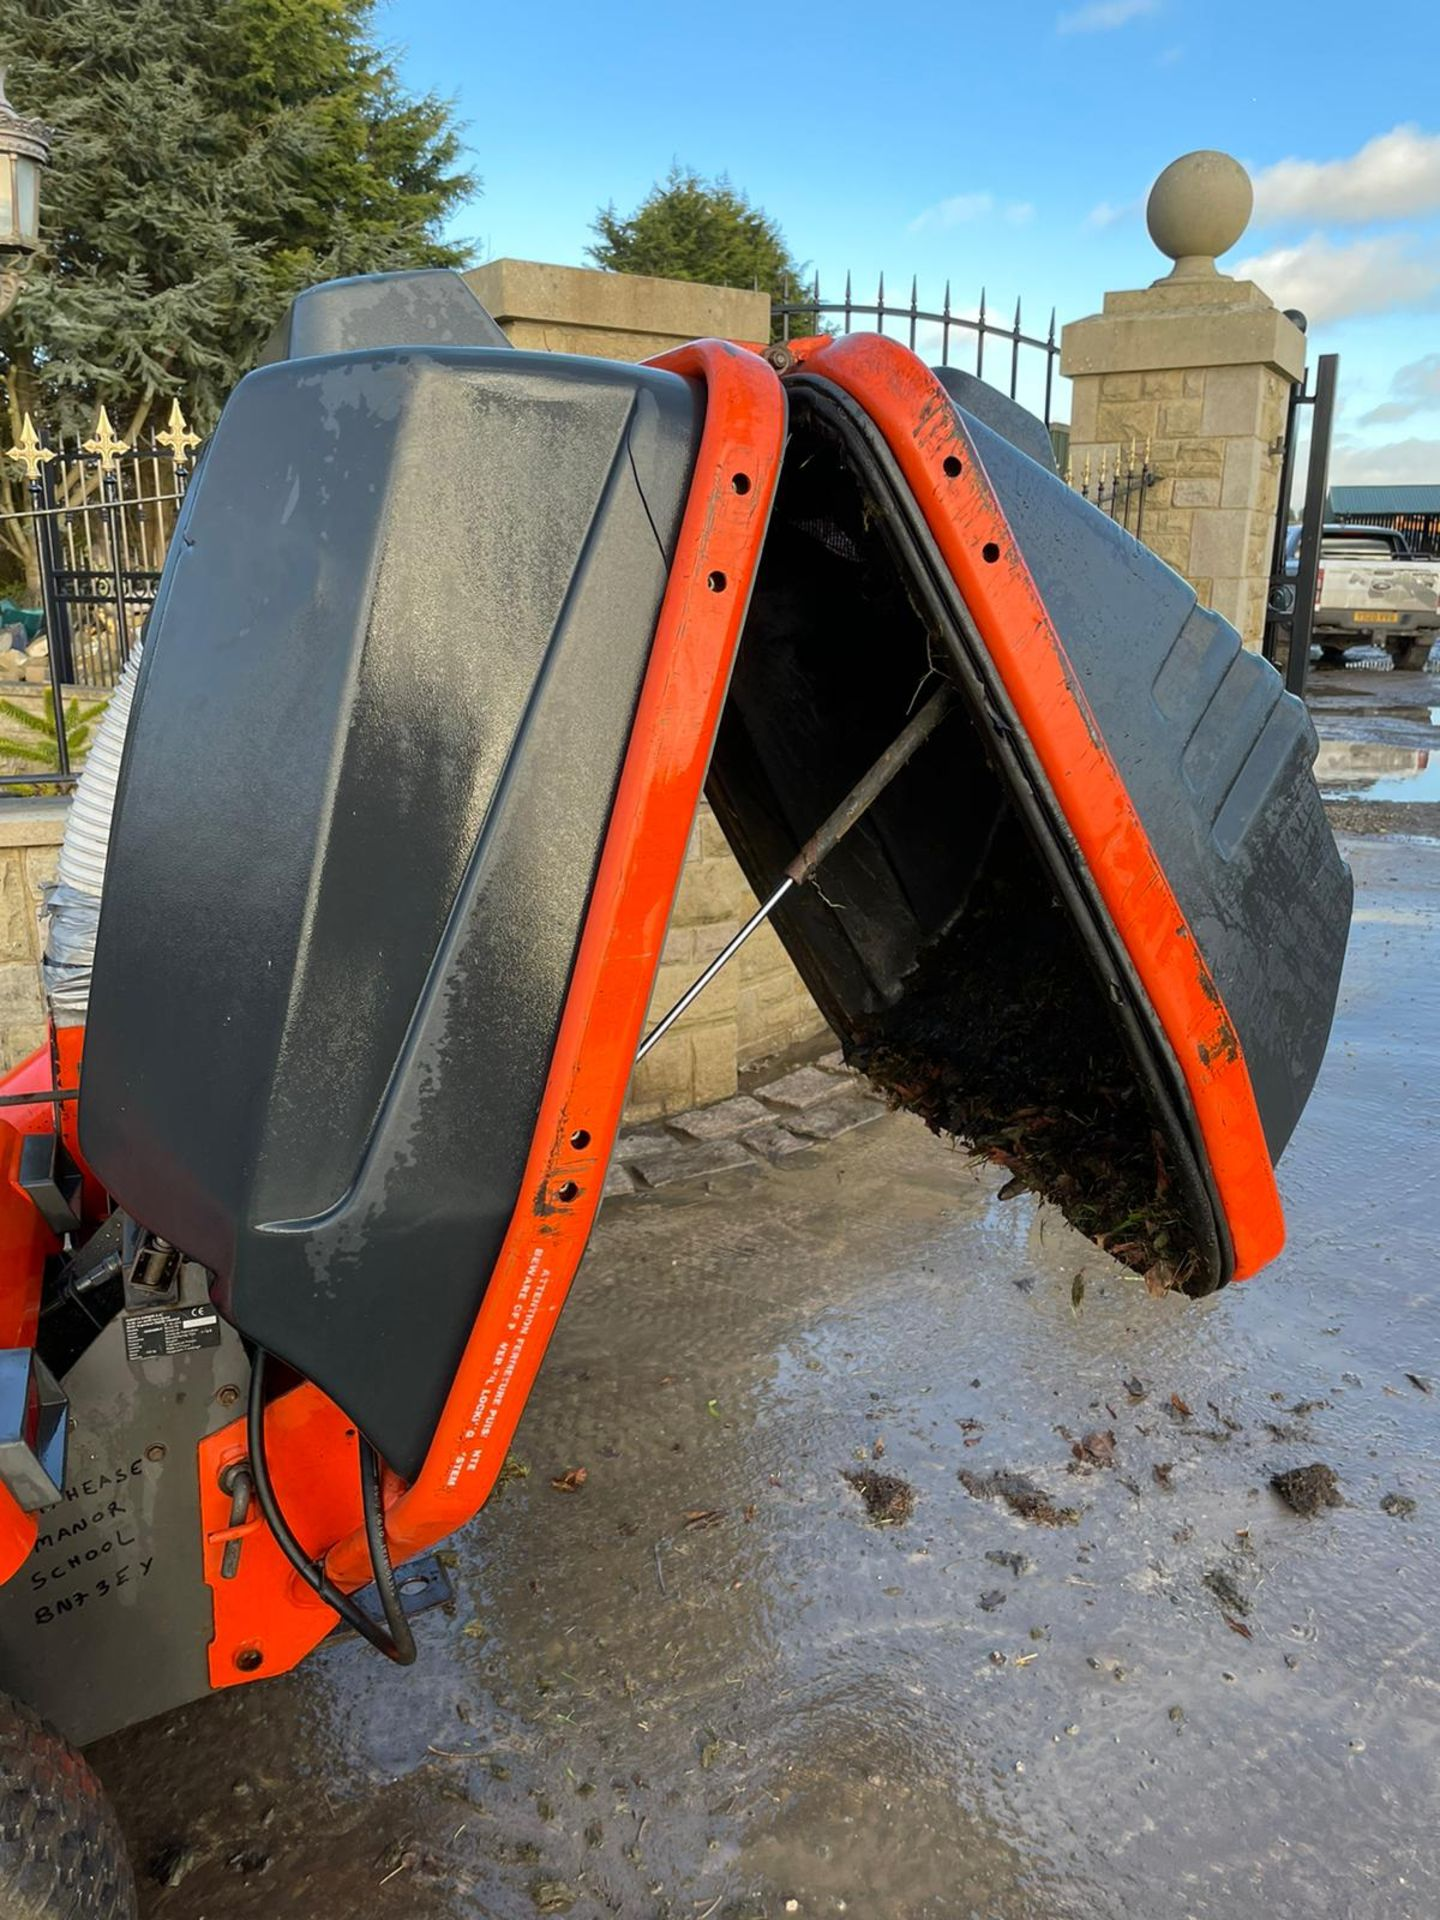 KUBOTA G1900 HST 4WS RIDE ON MOWER WITH COLLECTOR, RUNS, DRIVES AND CUTS, DIESEL ENGINE *NO VAT* - Image 5 of 7